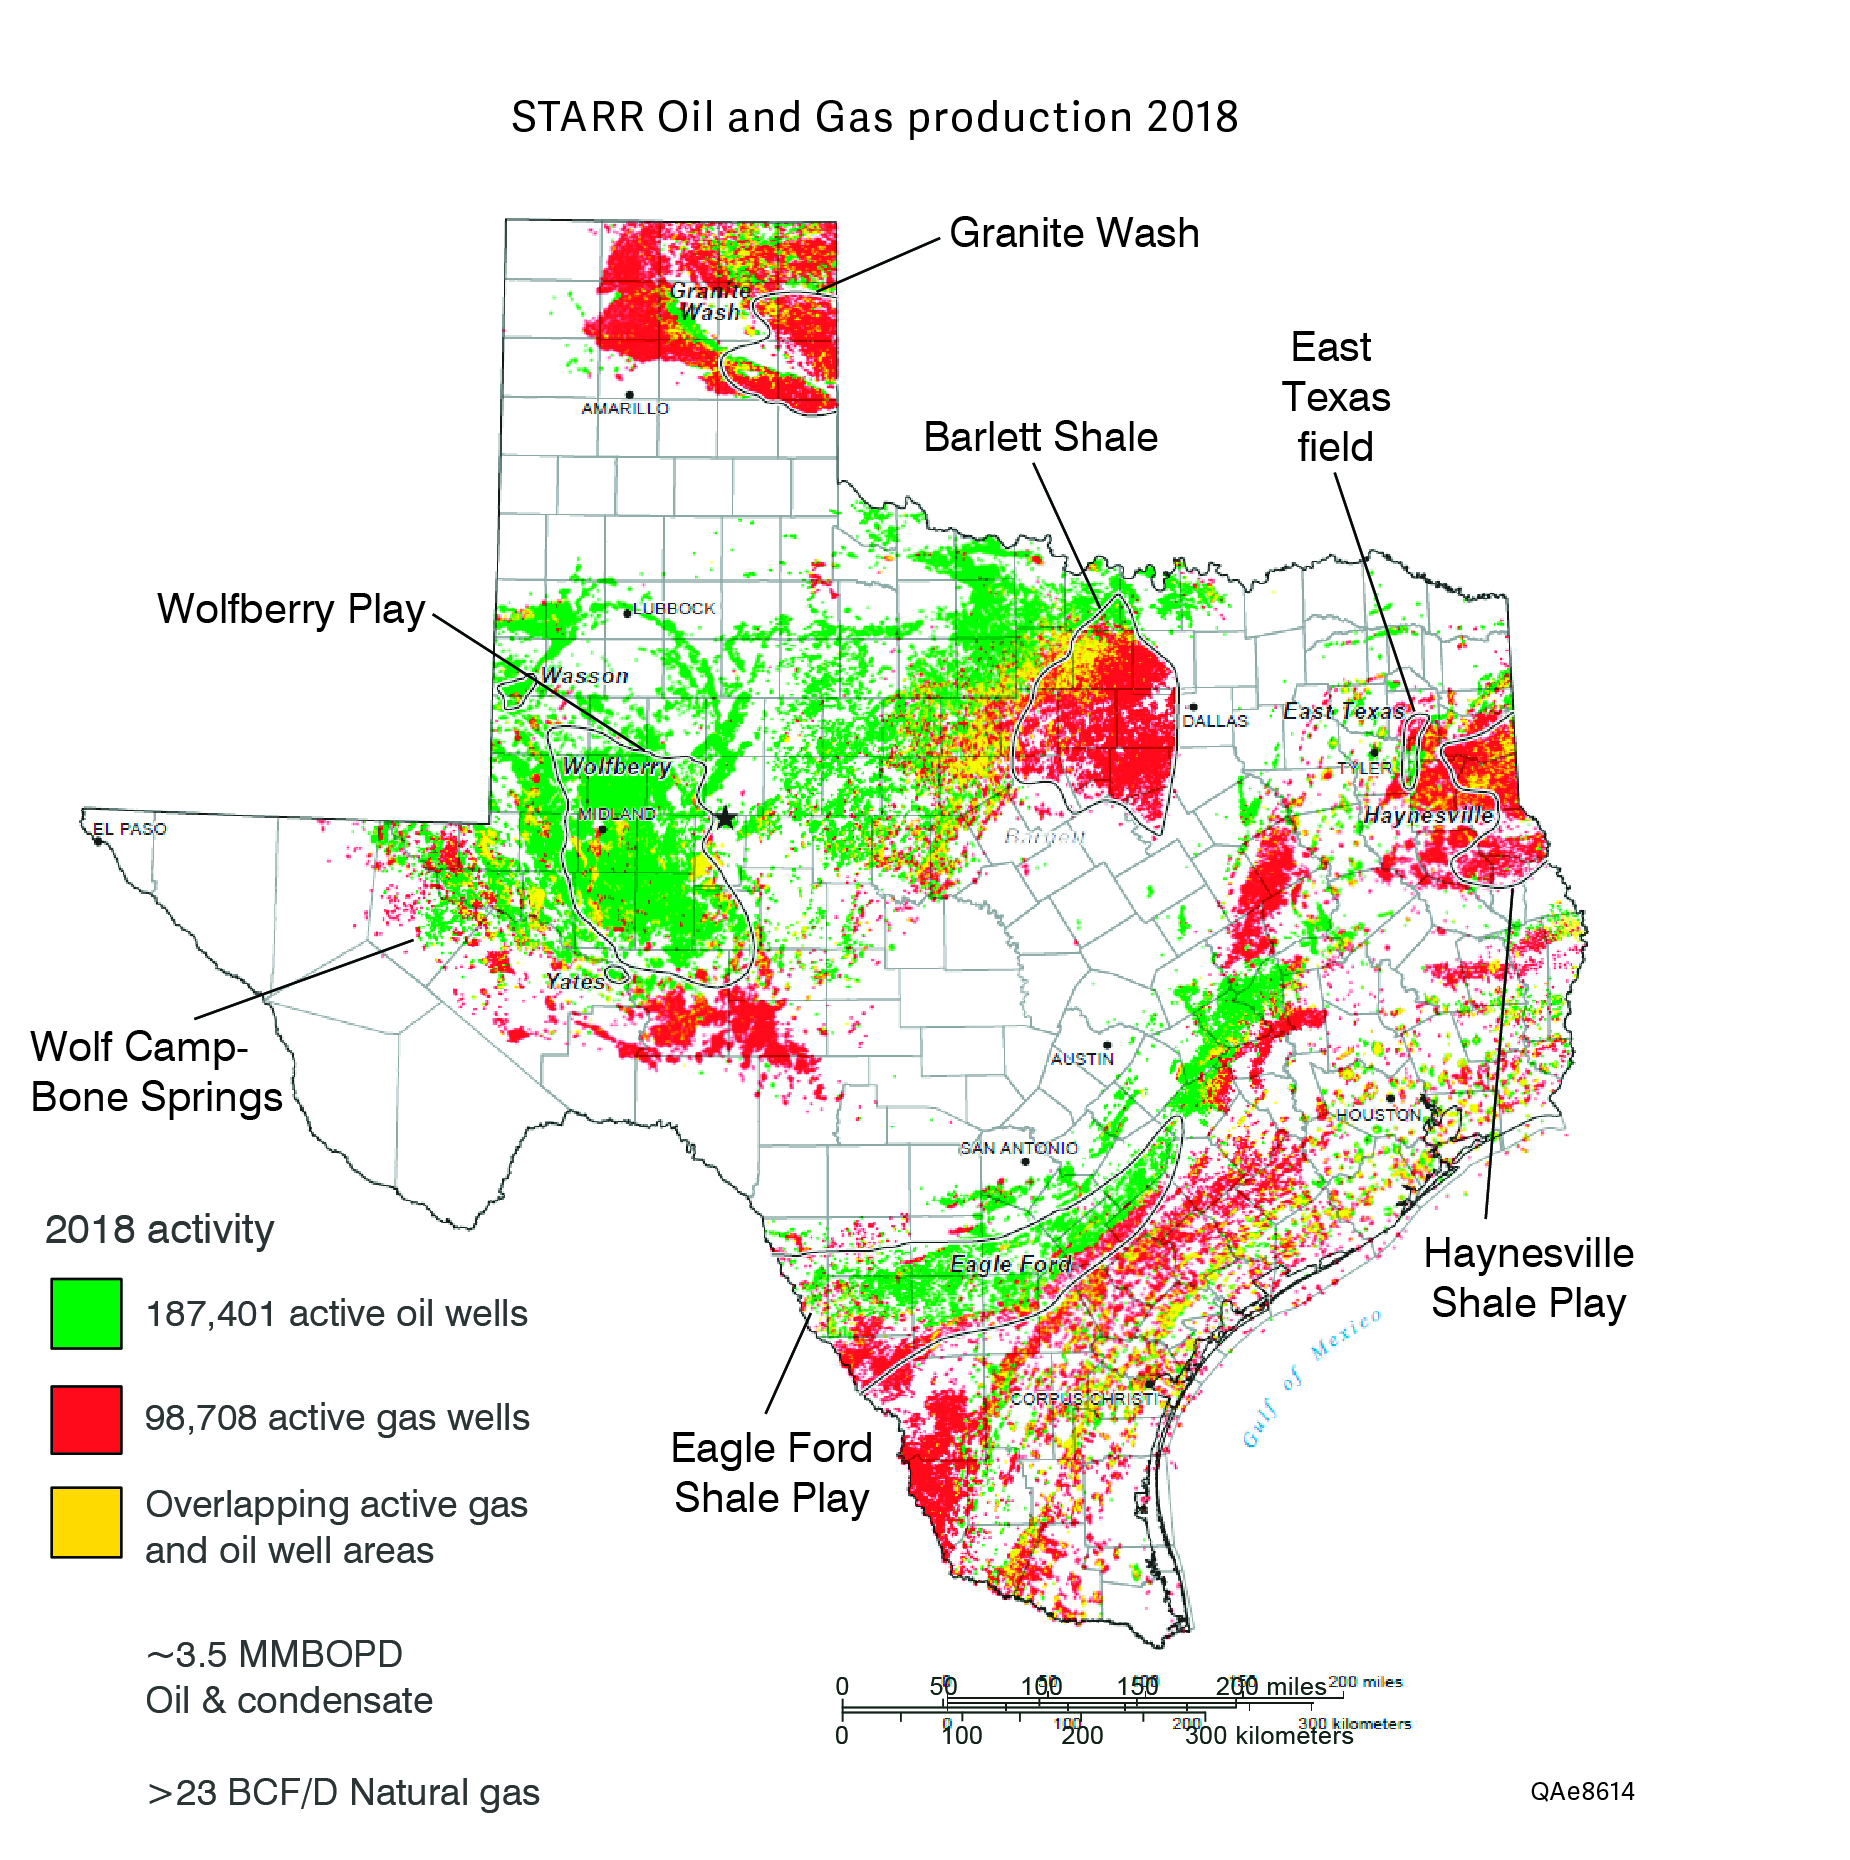 STARR Oil and gas production 2018